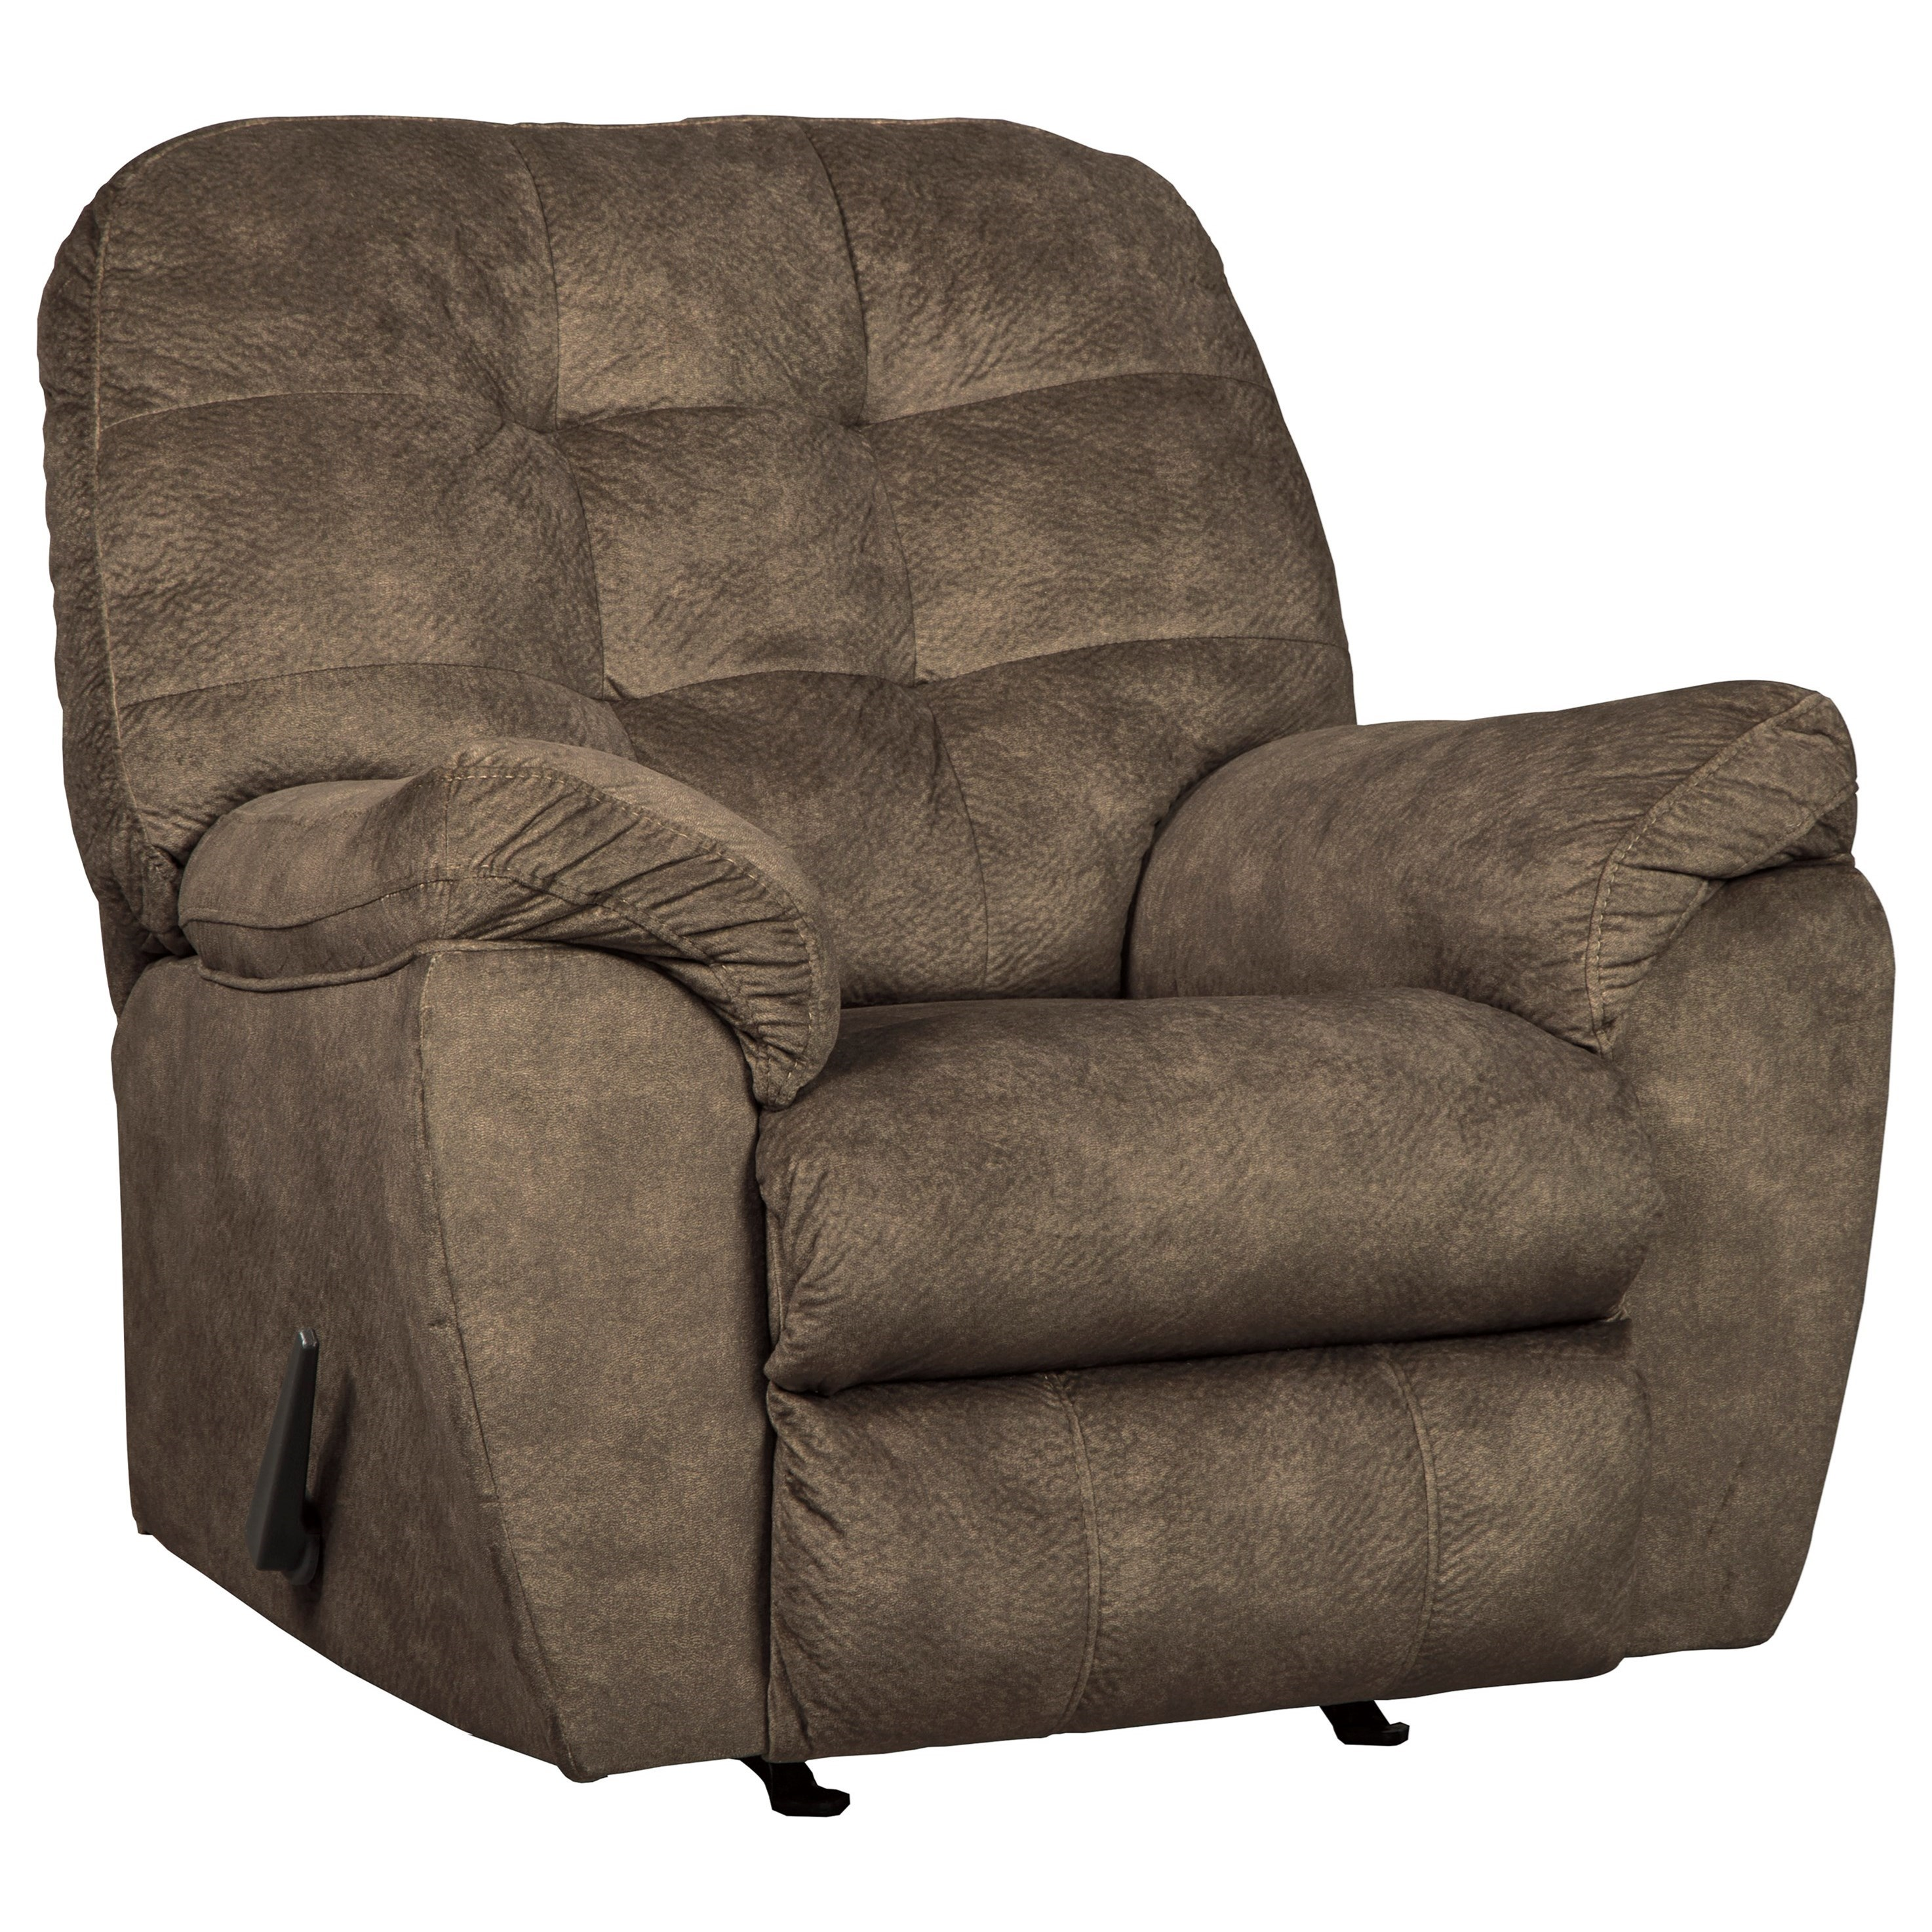 Accrington Rocker Recliner by Signature Design by Ashley at Beds N Stuff